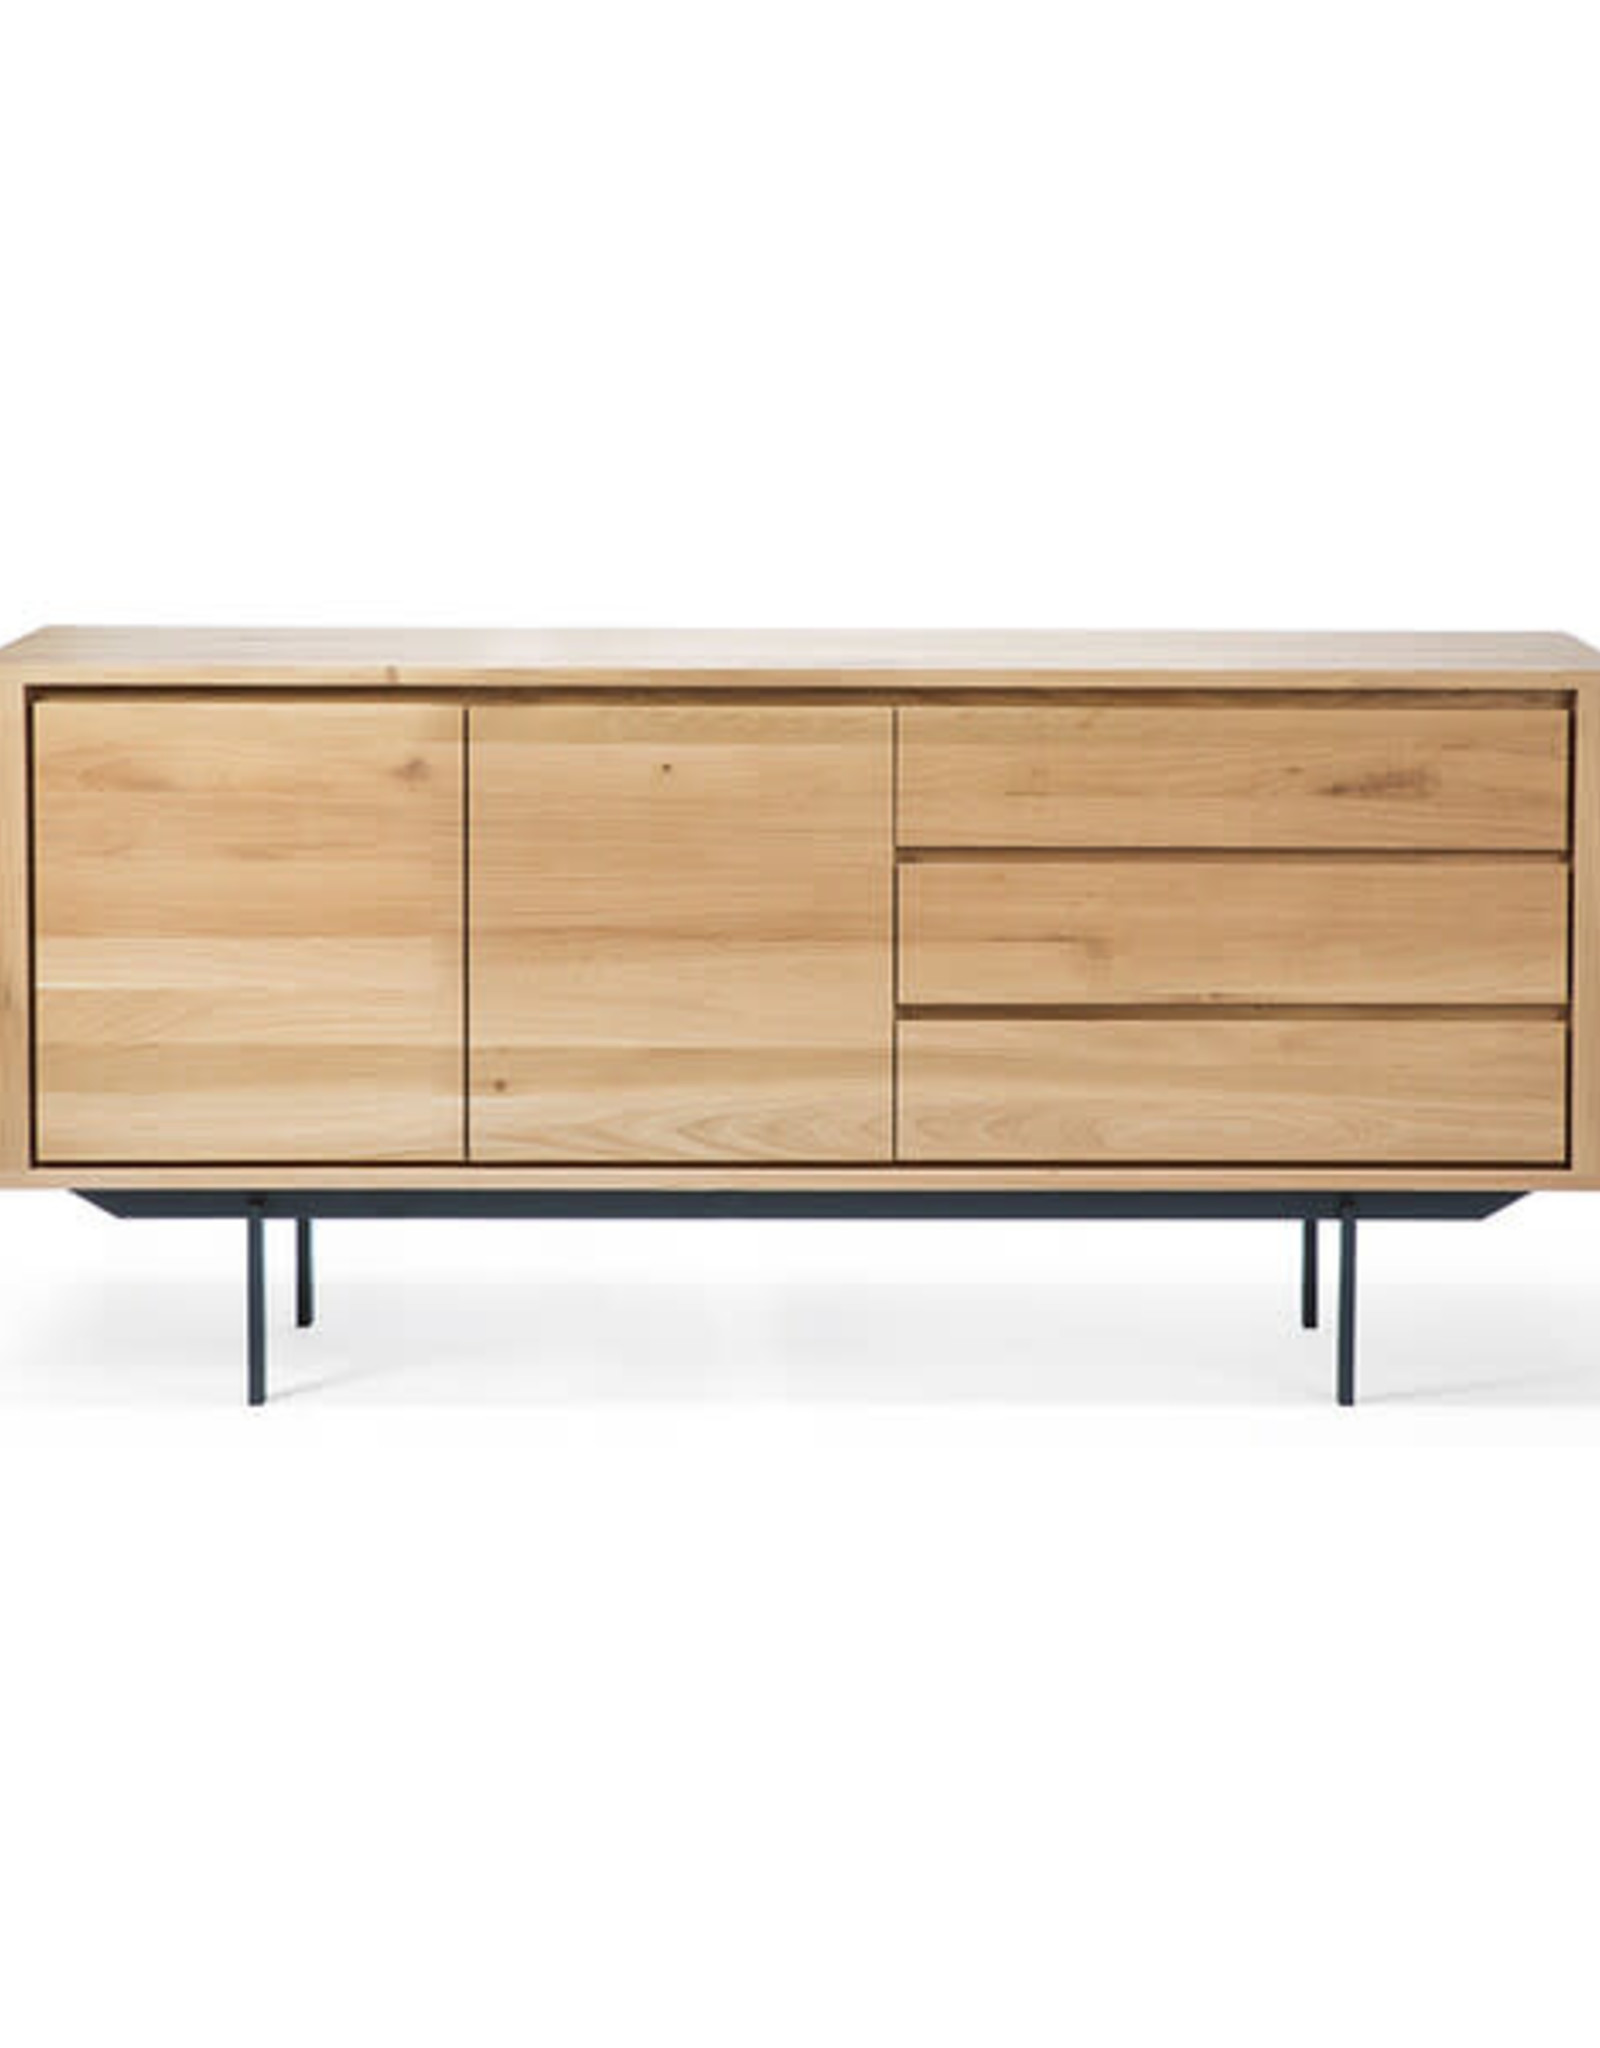 Ethnicraft USA LLC Oak Shadow Sideboard - 2 doors - 3 drawers - metal legs